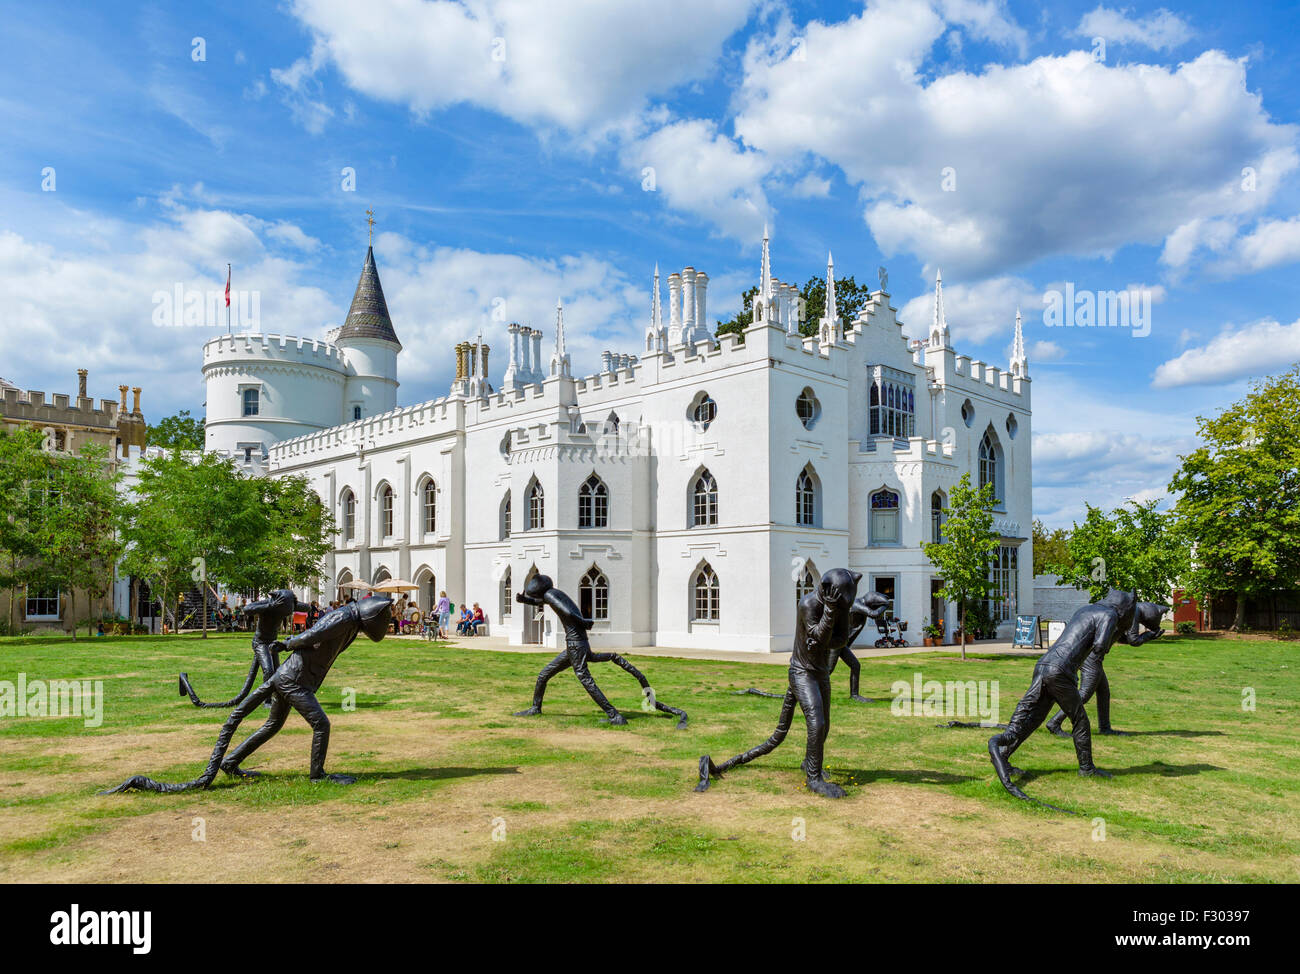 Strawberry Hill House, with Laura Ford sculptures in foreground (temporary exhibition till 31/10/15), Twickenham, - Stock Image